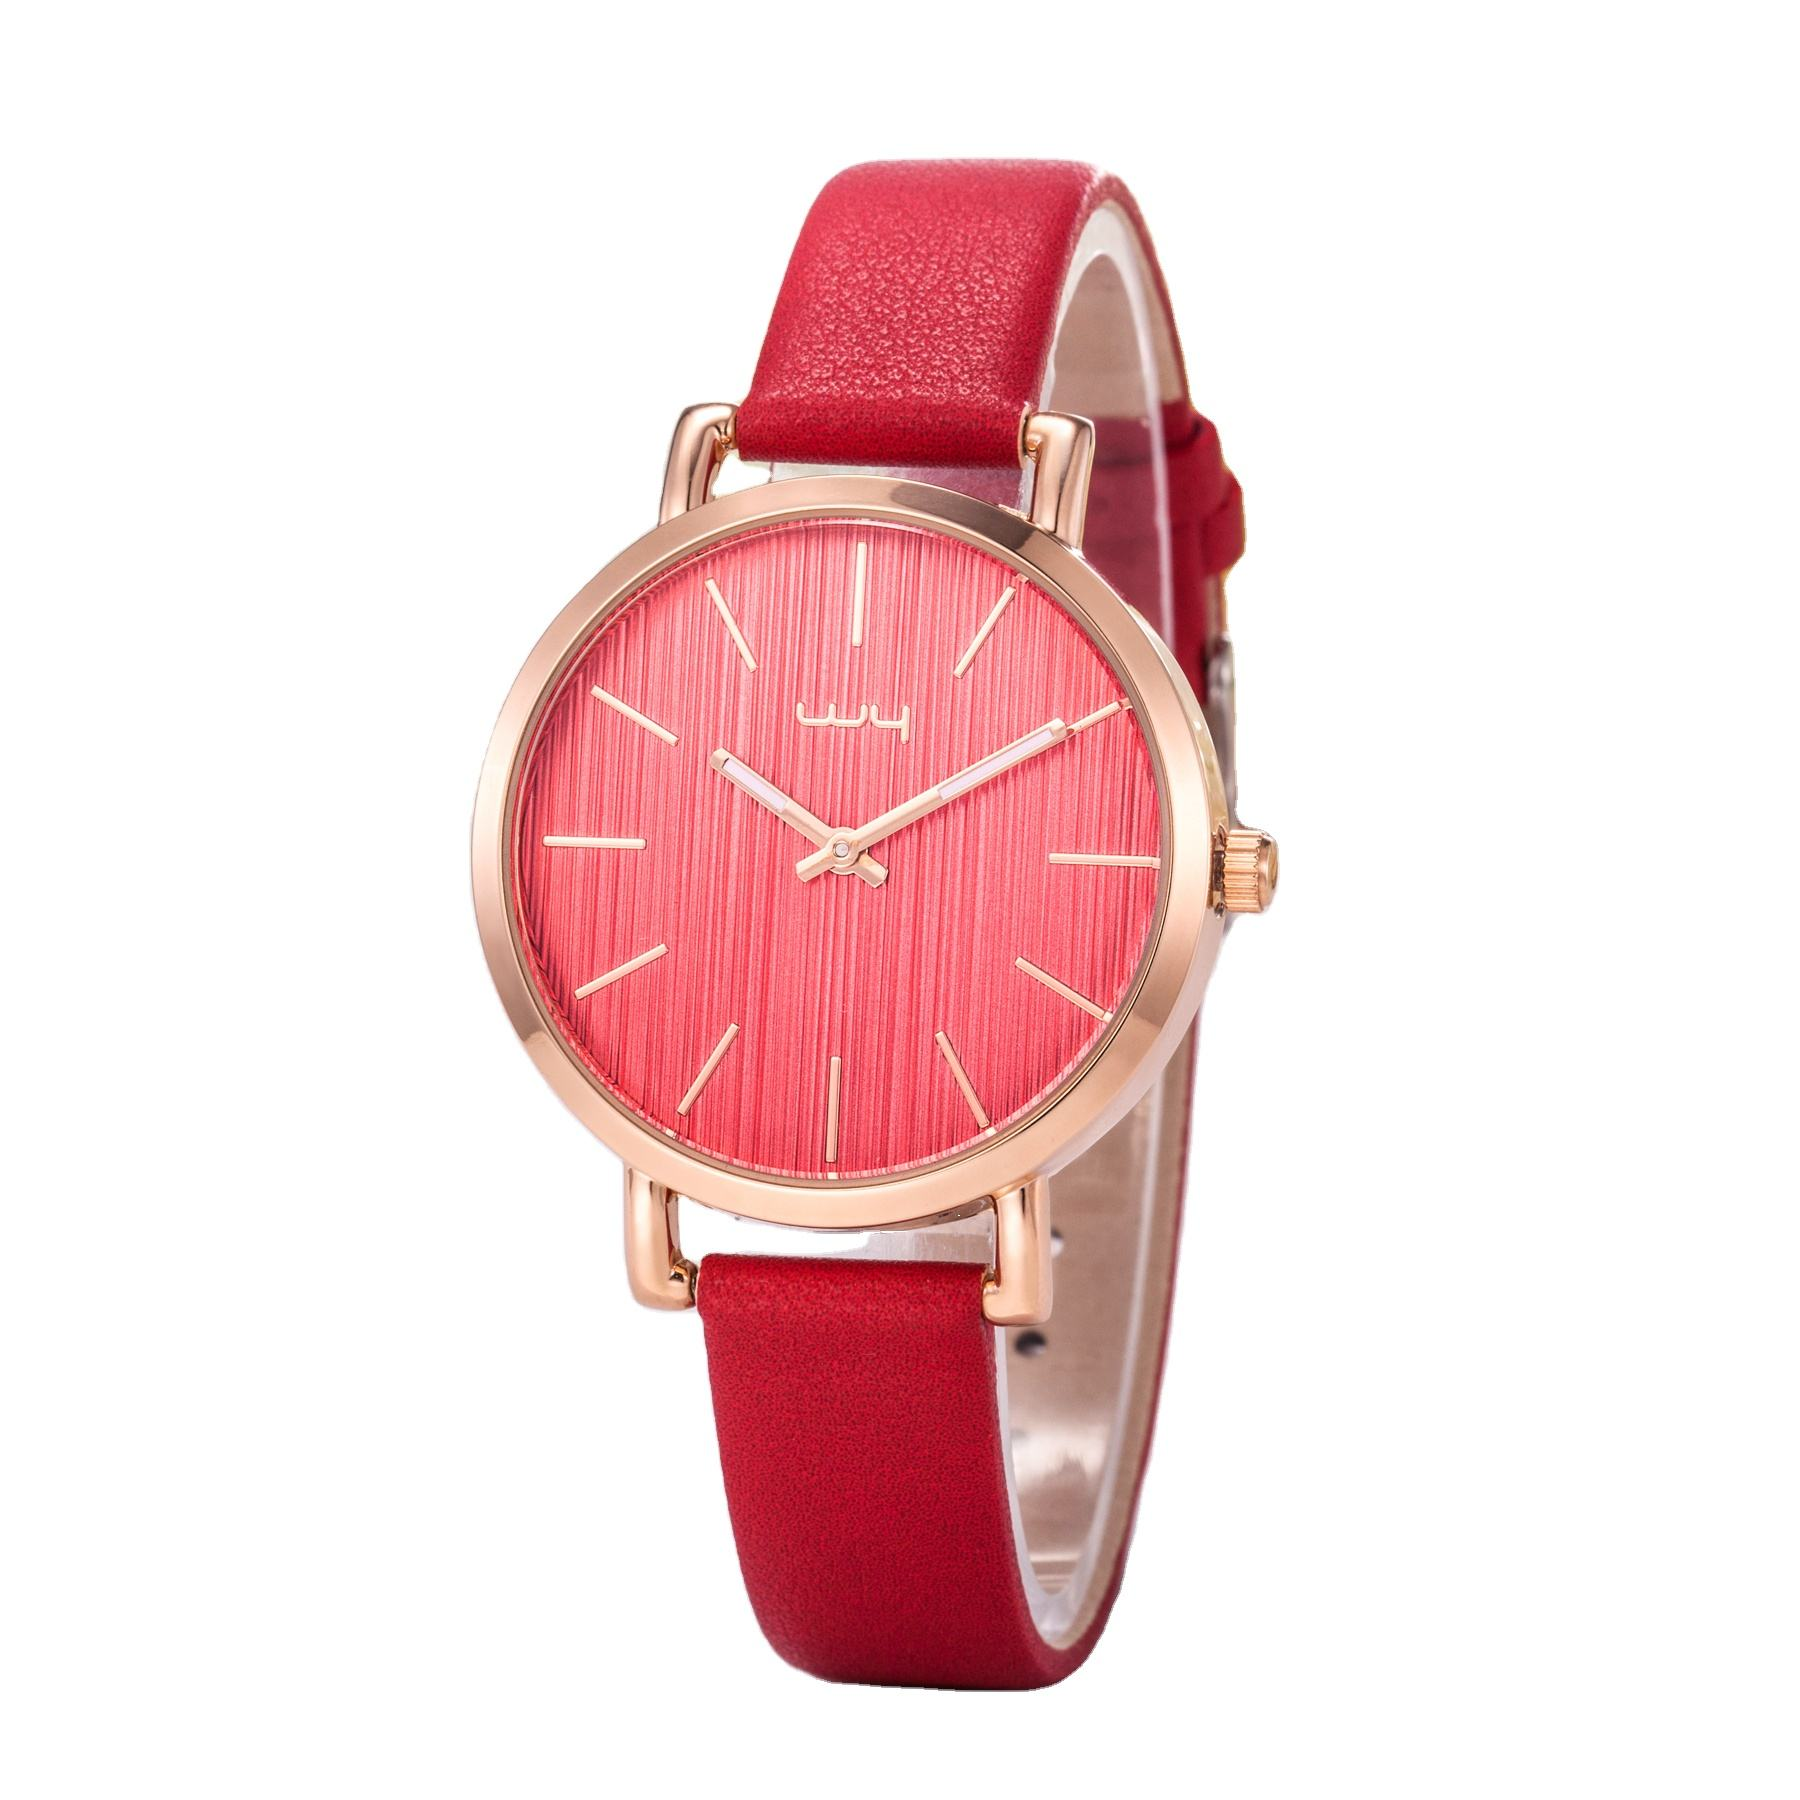 WY-119 women latest fashion couple watch best festival gift OEM LOGO quartz watches with gift box